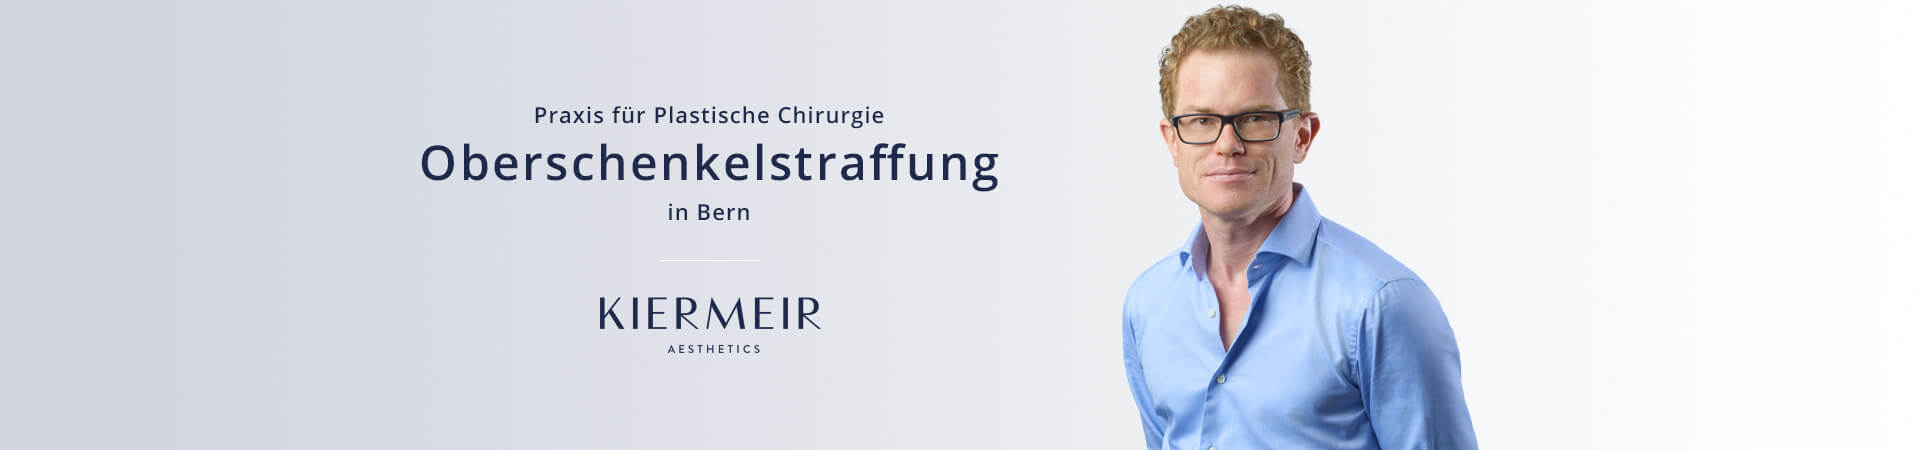 Oberschenkelstraffung in Bern - Dr. David Kiermeir